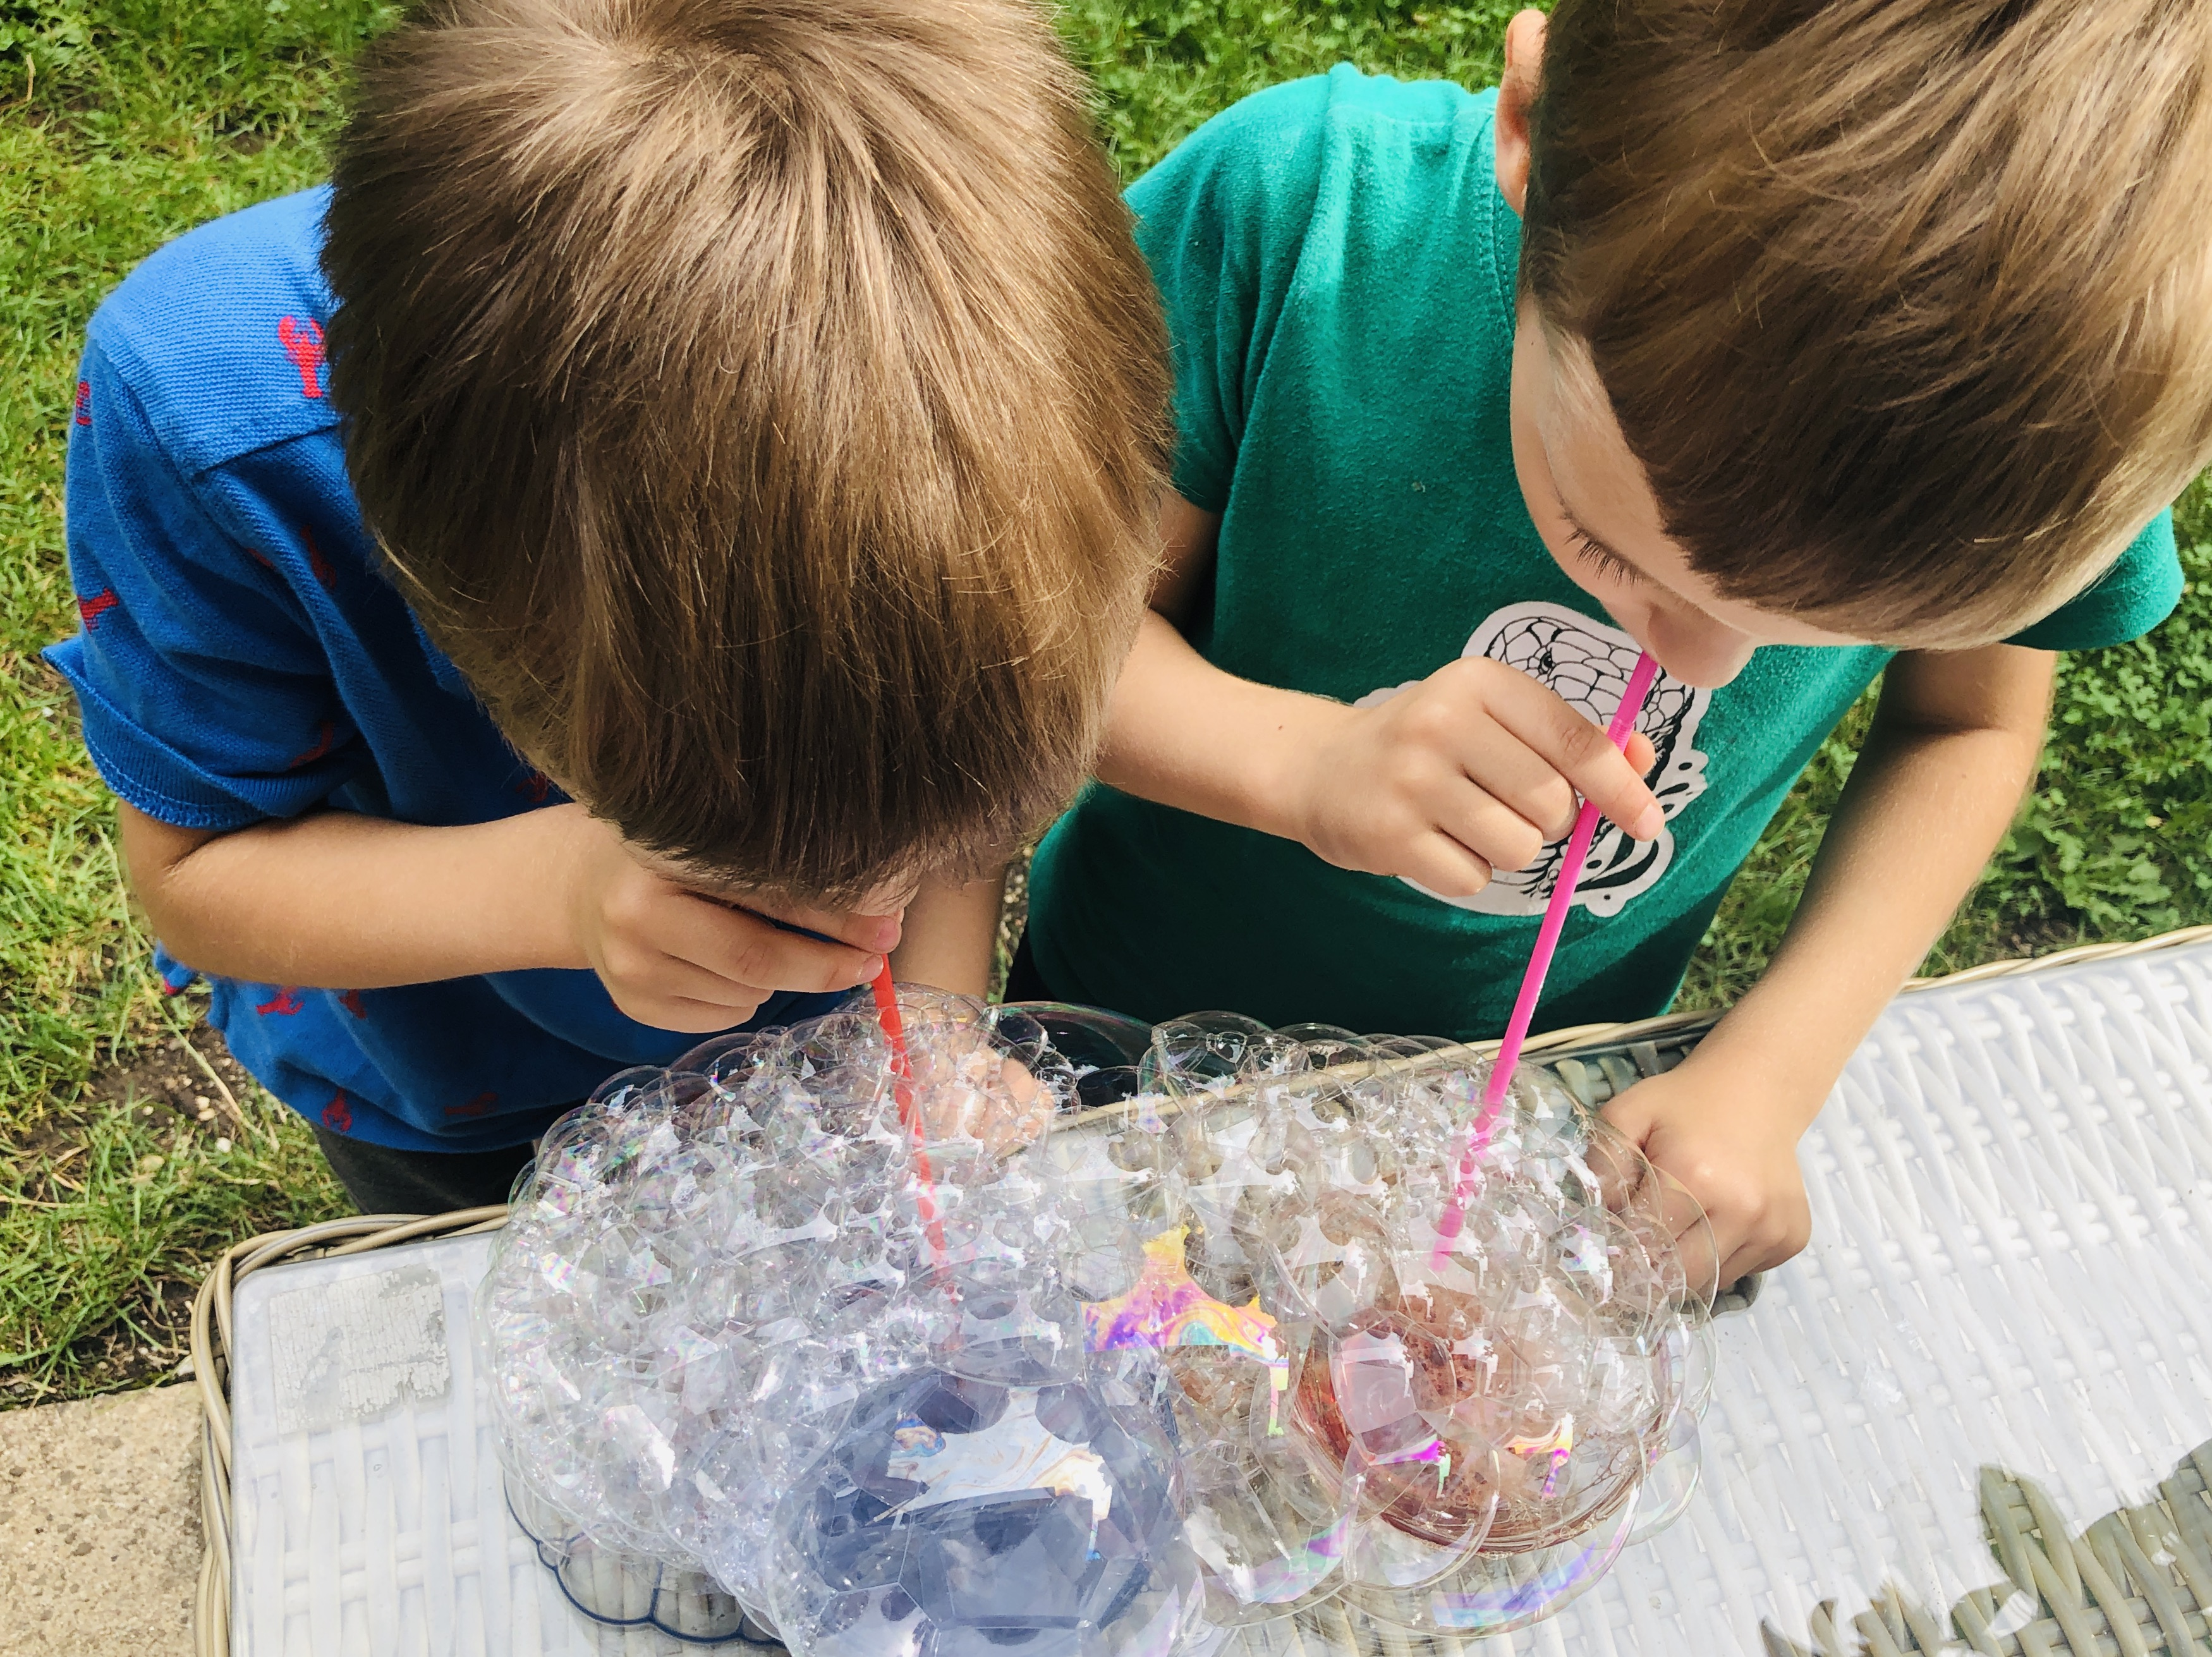 blowing bubbles with straws